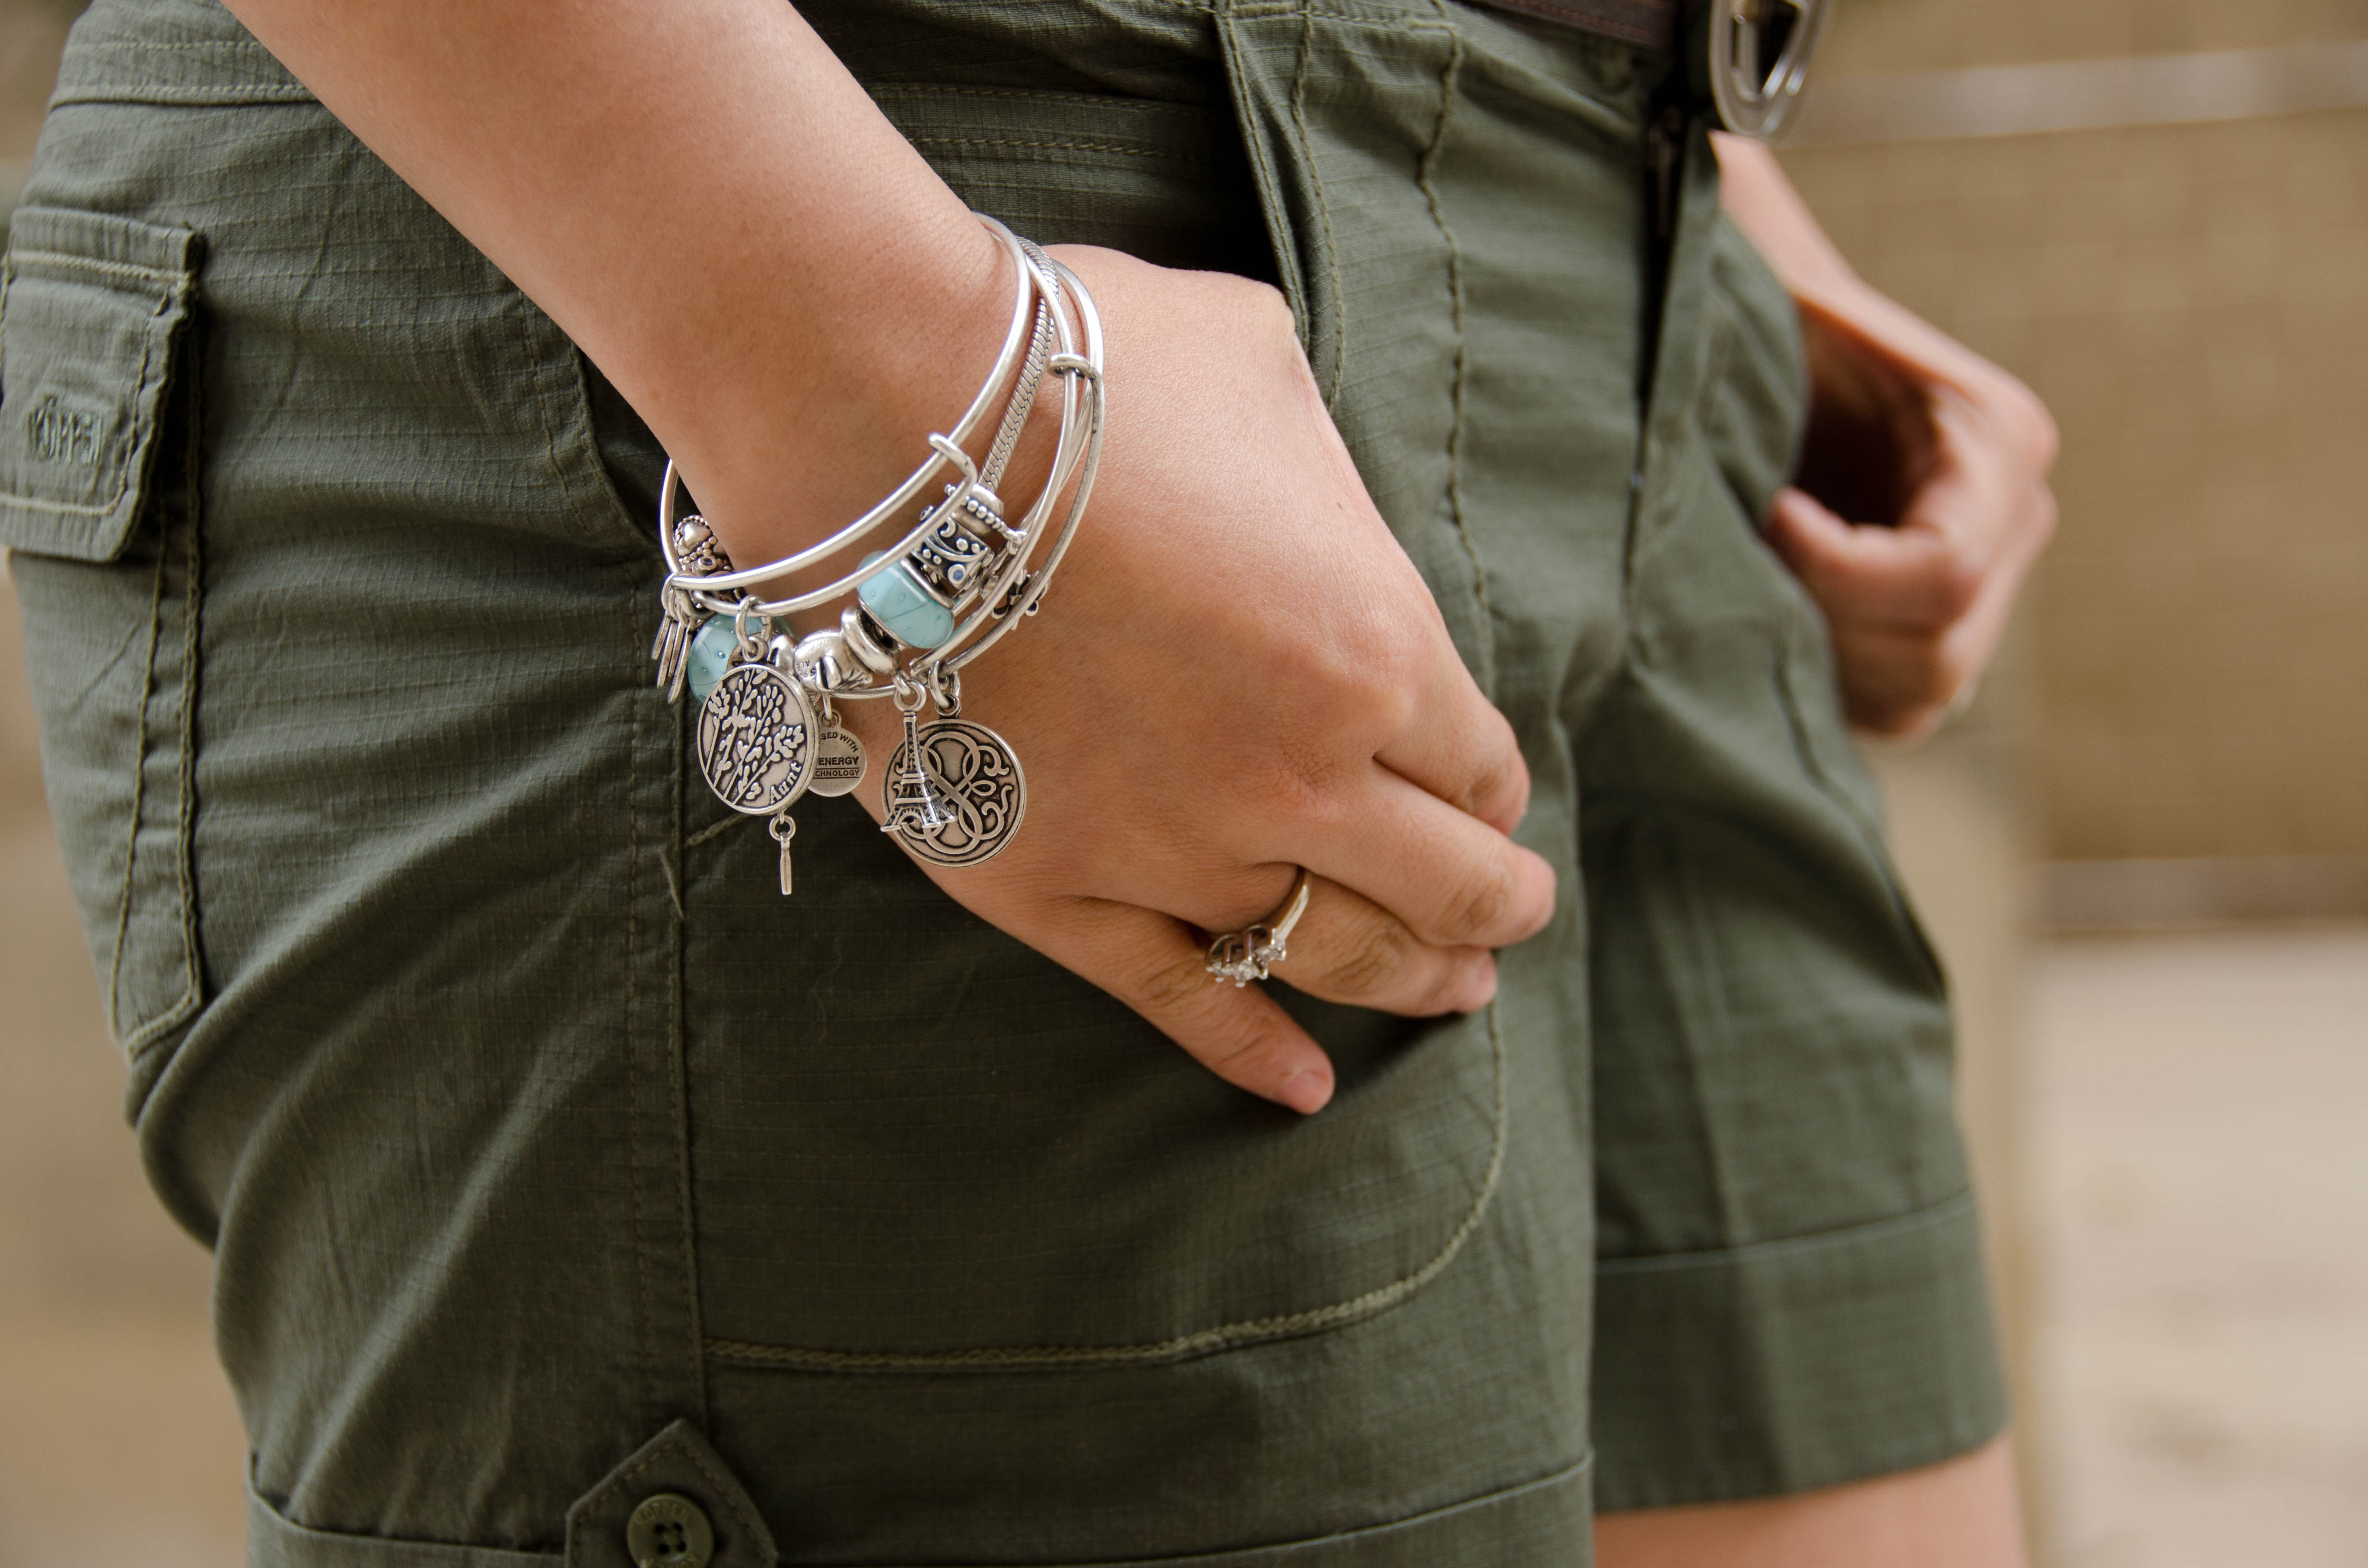 How To Wear A Pandora Bracelet